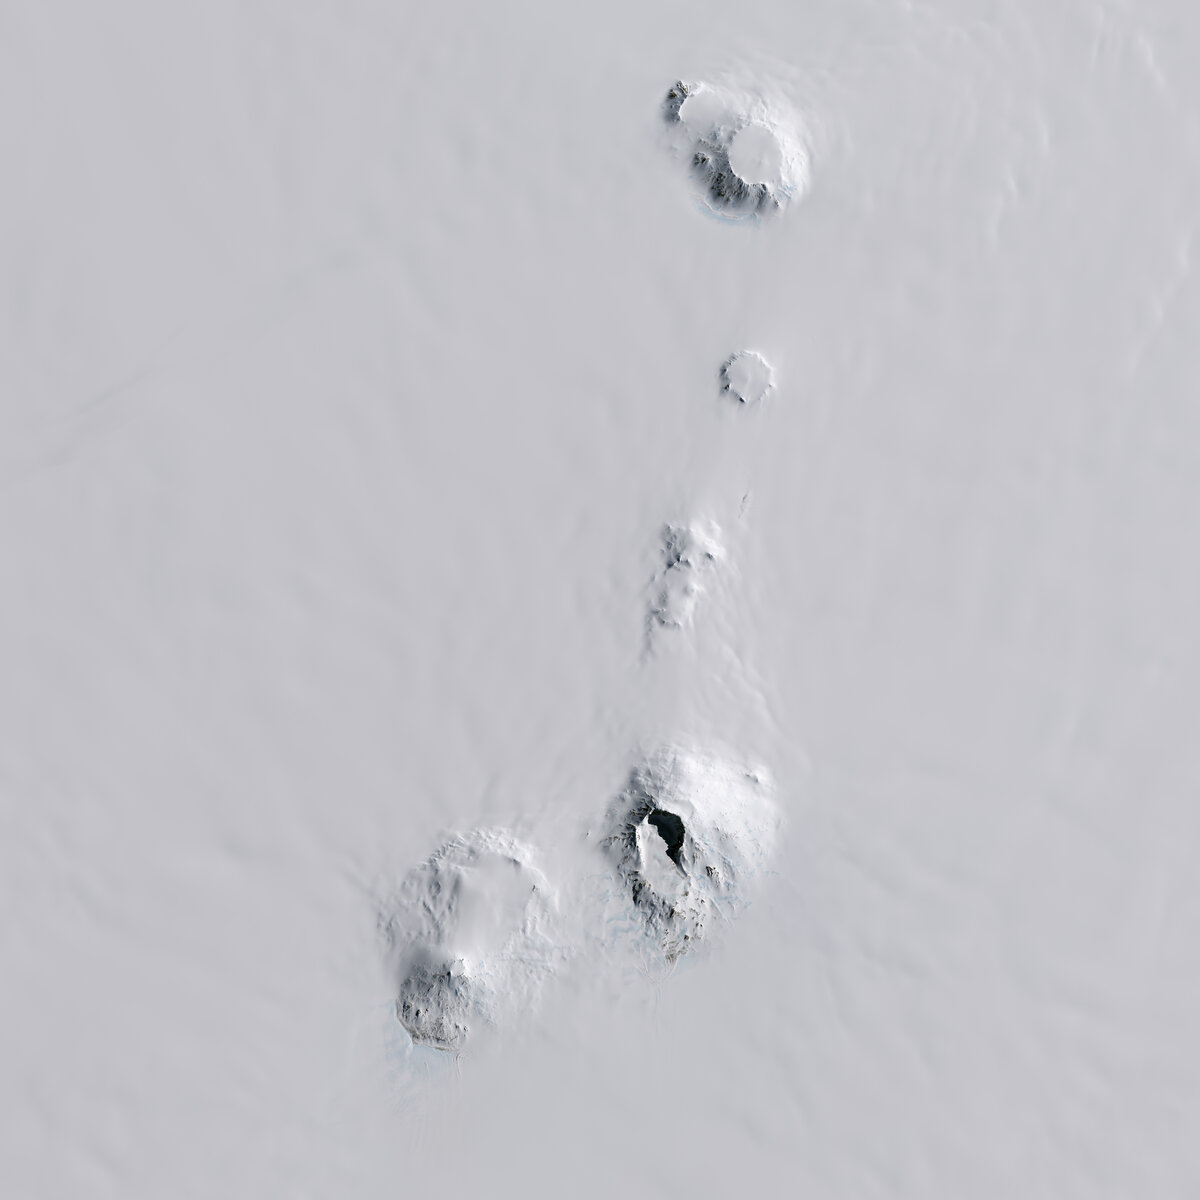 Executive Committee Range volcanoes, including Mt. Sidley